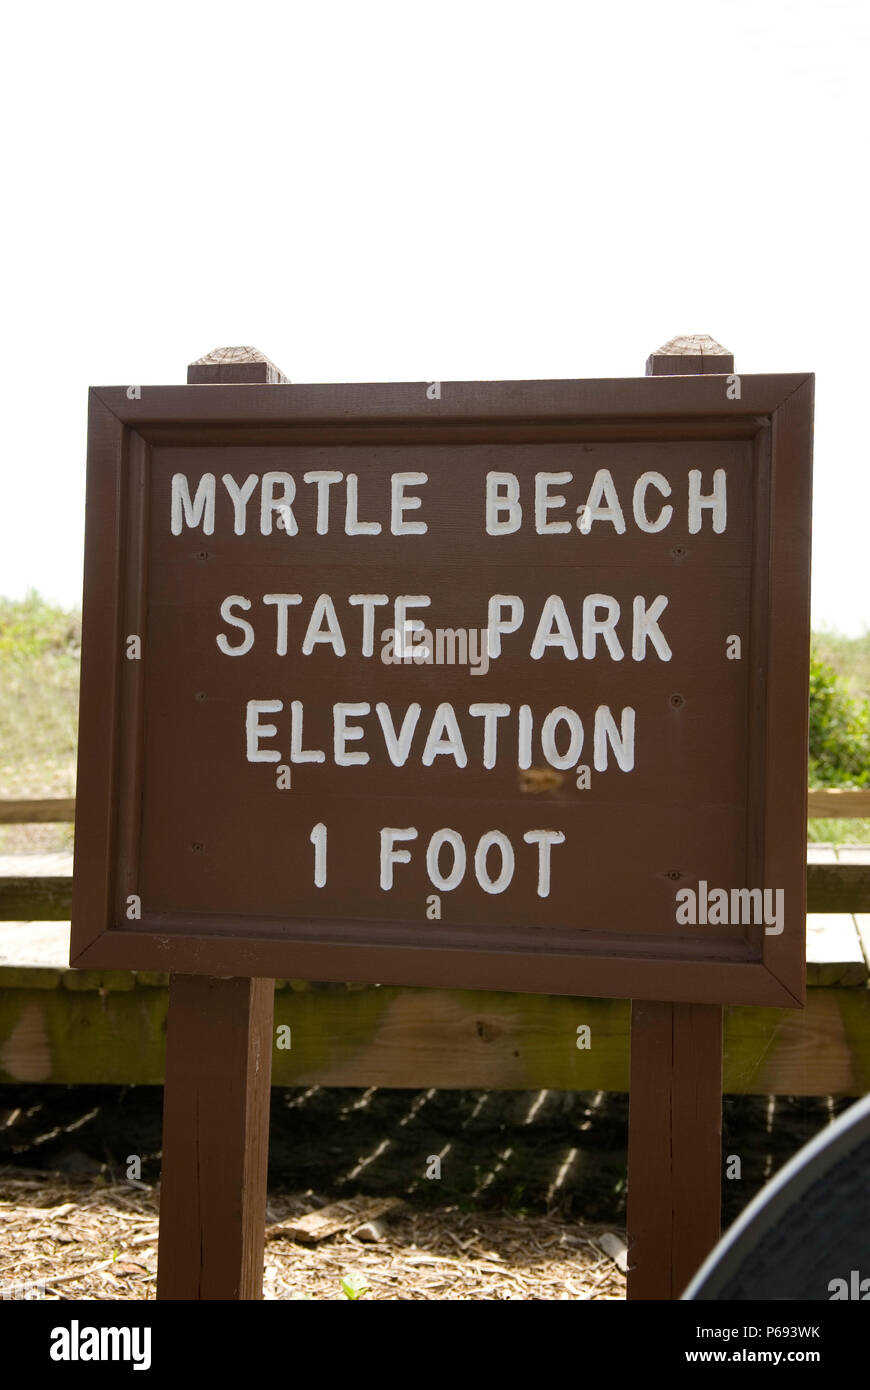 One Foot Elevation Sign at Myrtle Beach State Park, SC, USA. - Stock Image